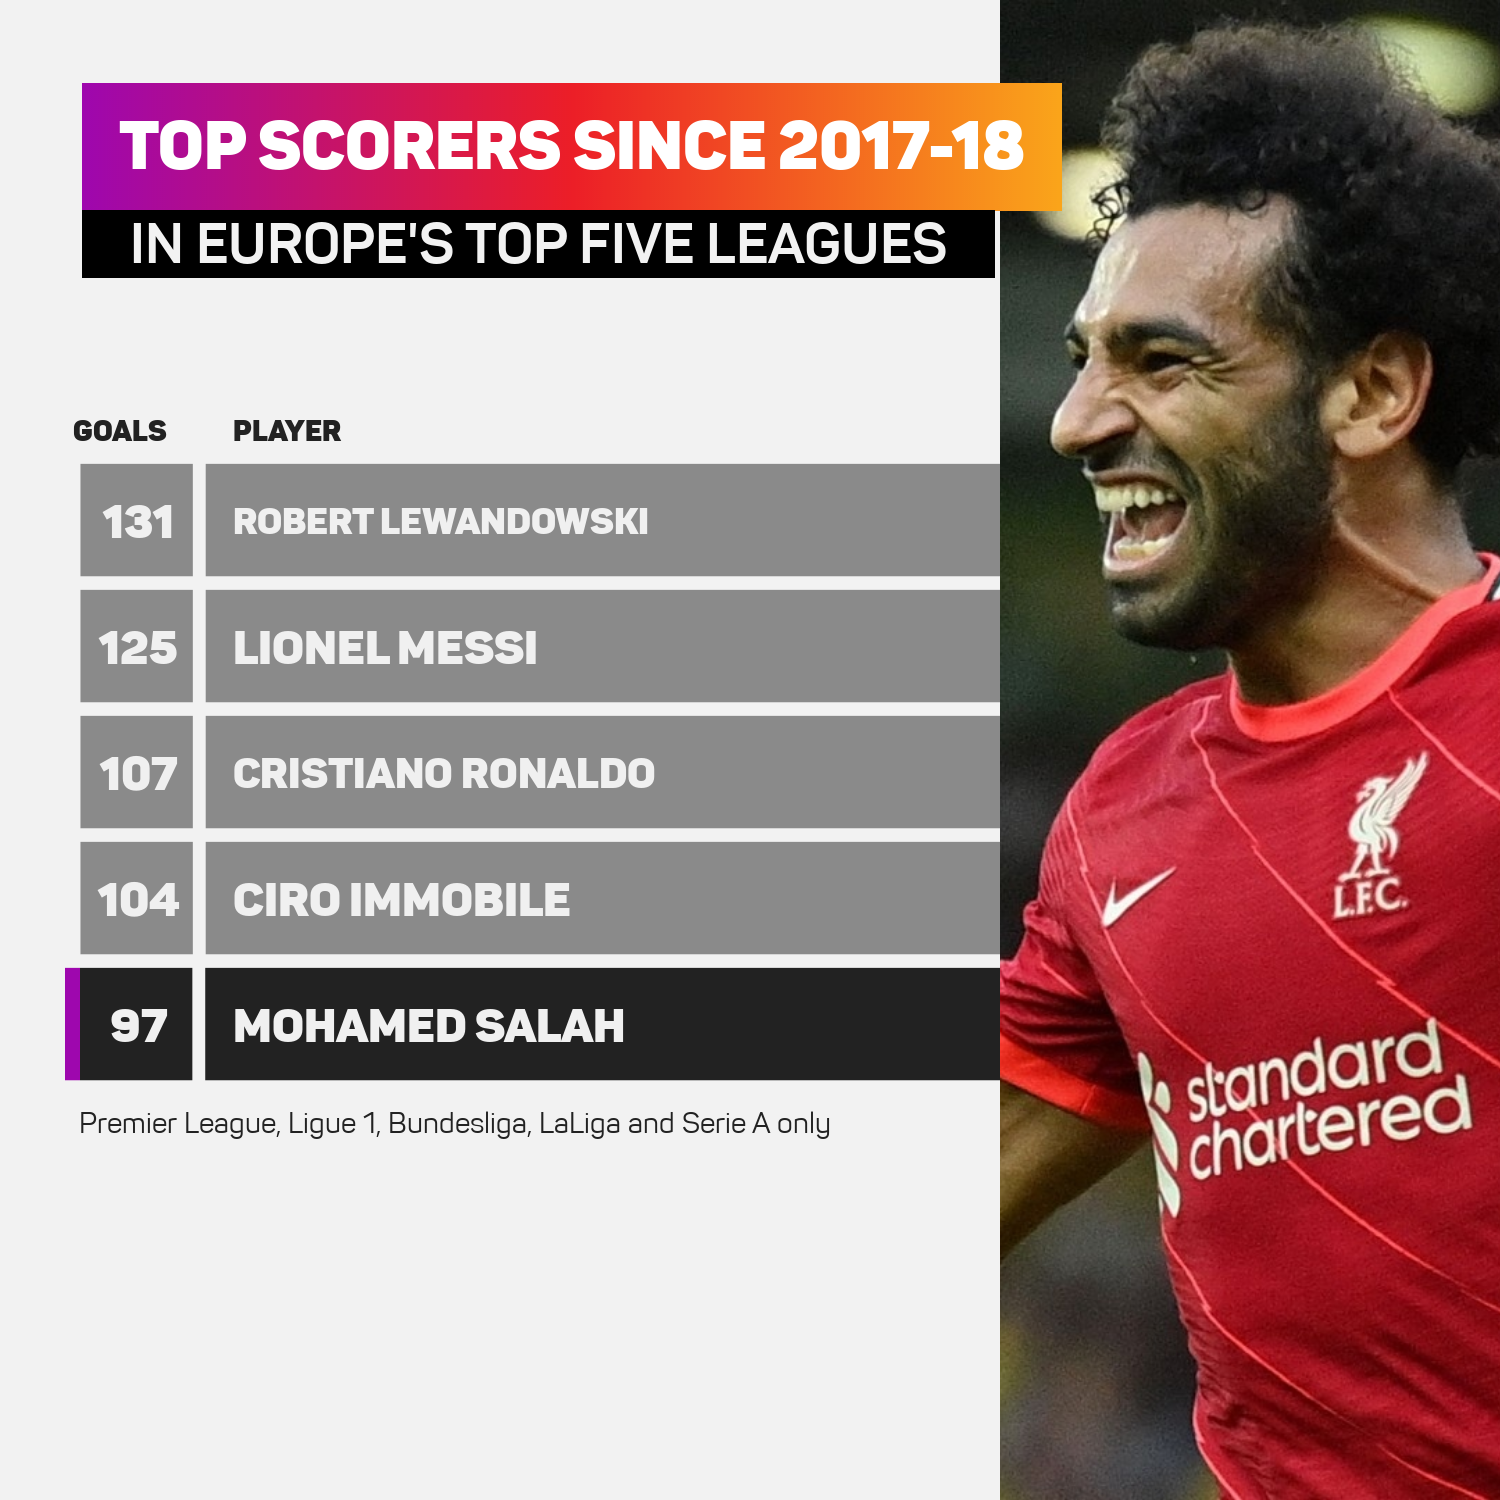 Mohamed Salah has been among Europe's top-scoring players over the past four years